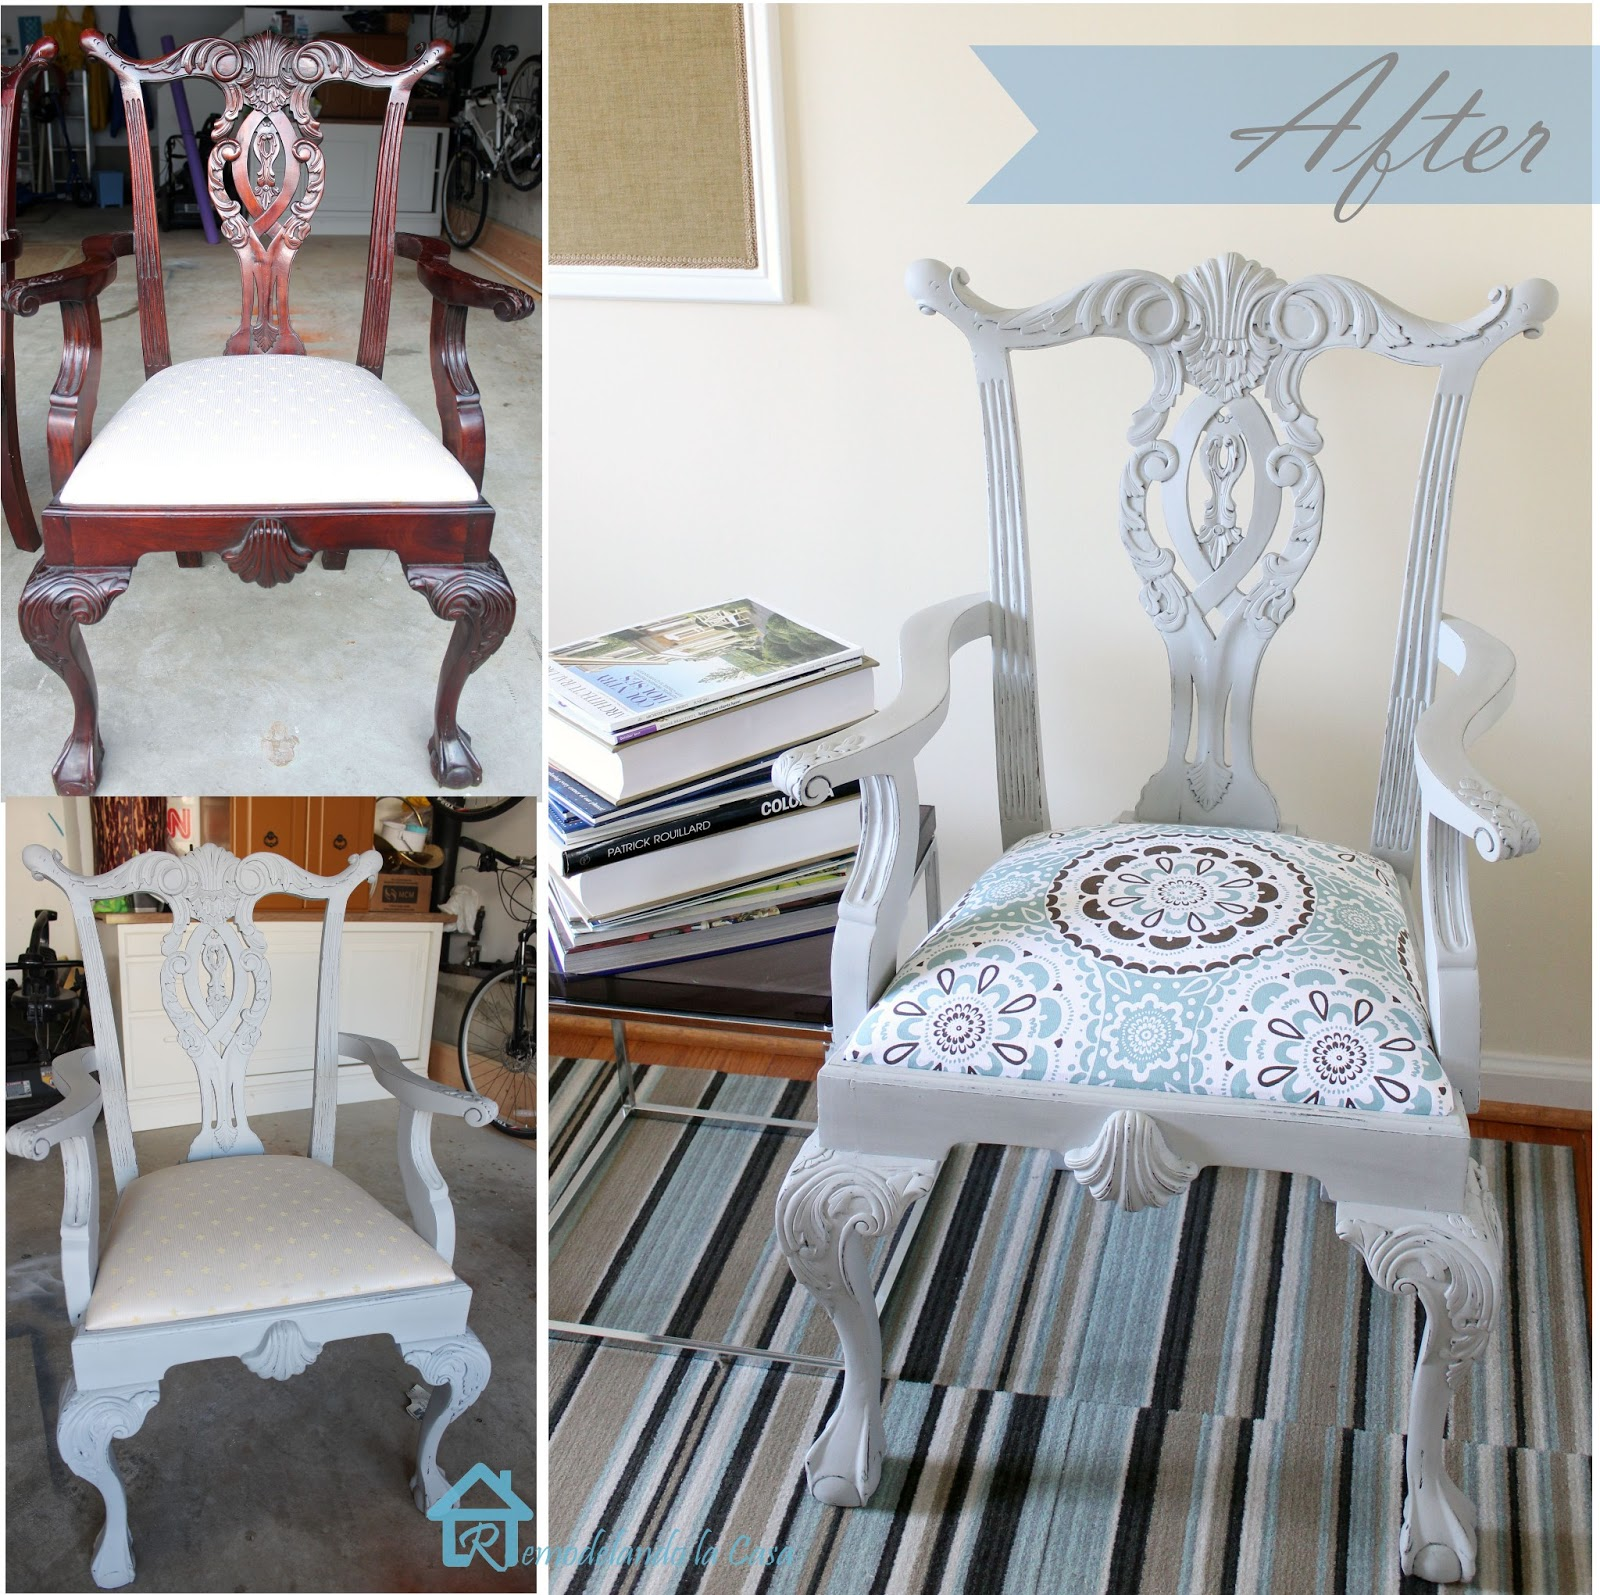 I Loved The Old Fabric But It Was Now Time For Change Recovering A Chair Seat Is One Of Those Easy Projects That Give You Lots Satisfaction